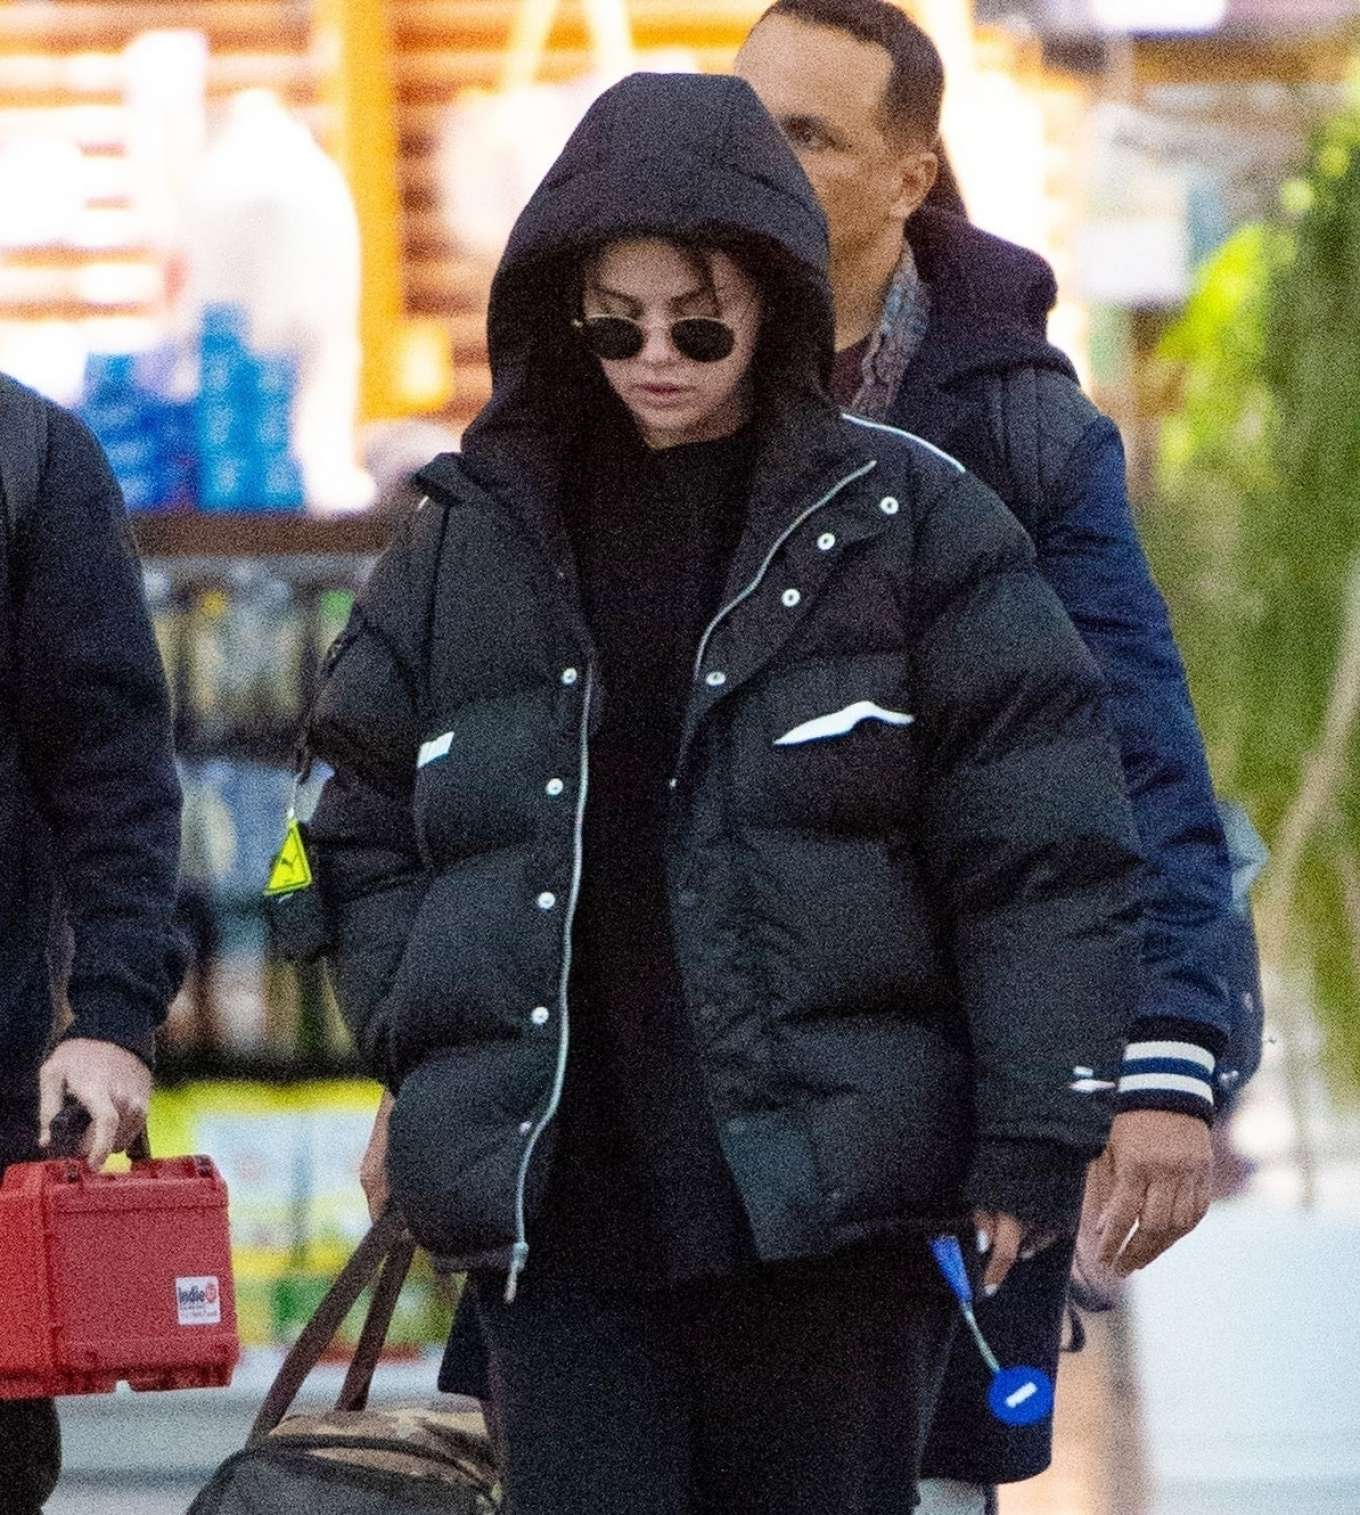 Selena Gomez donning a oversized black nylon puffer jacket with extra long sleeves and concealed button